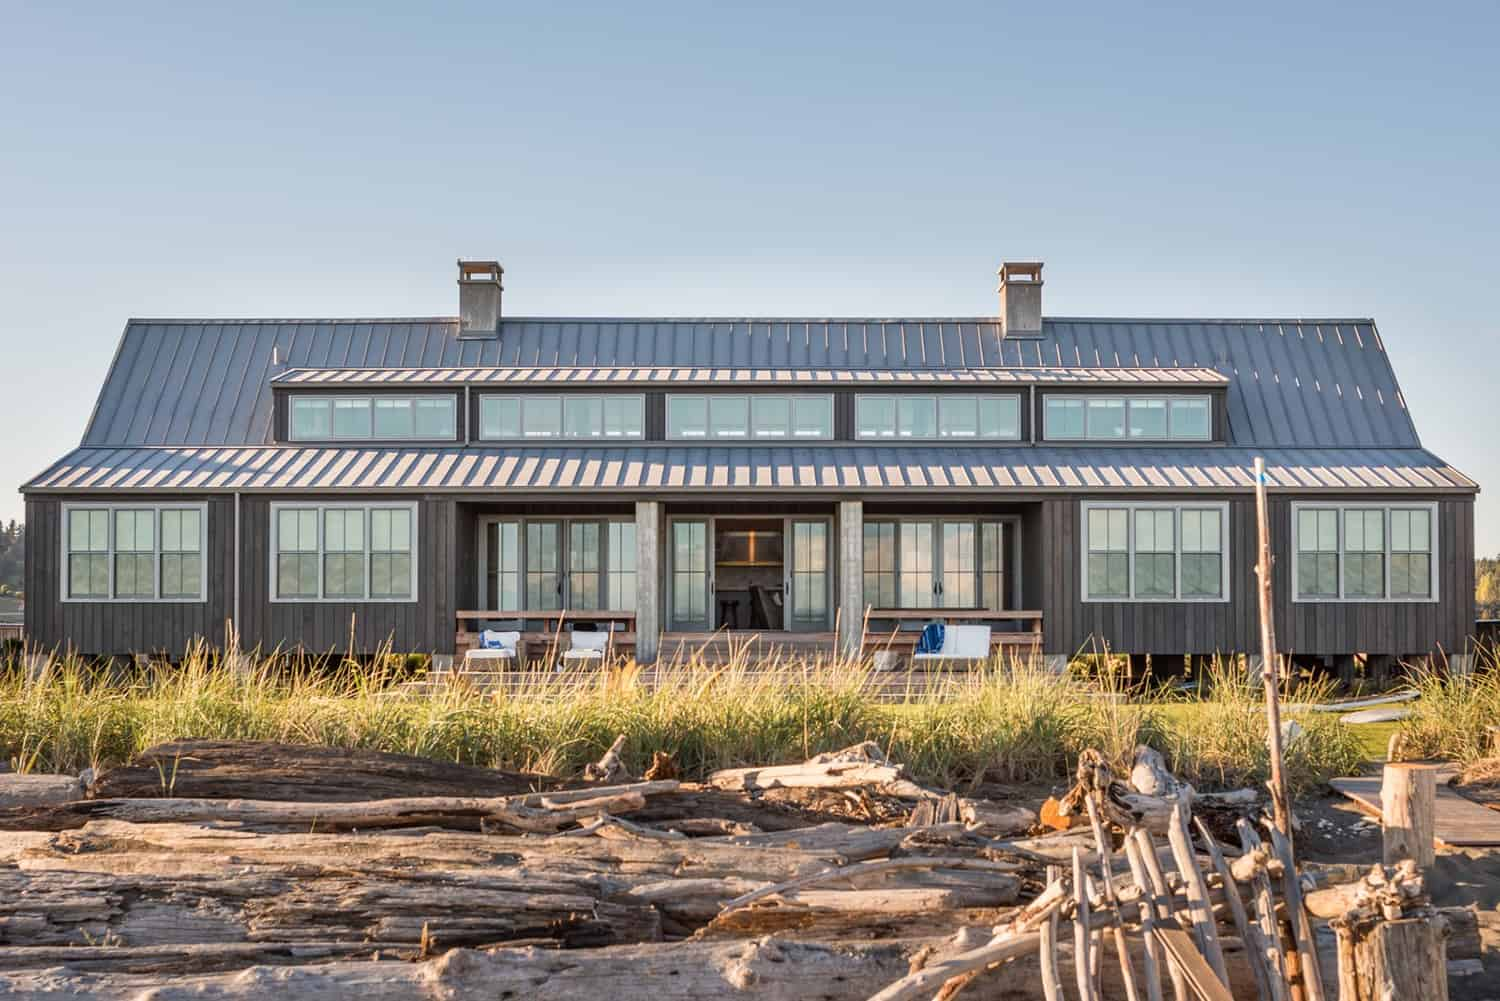 Waterfront shelter has amazing beach-chic lifestyle on Whidbey Island